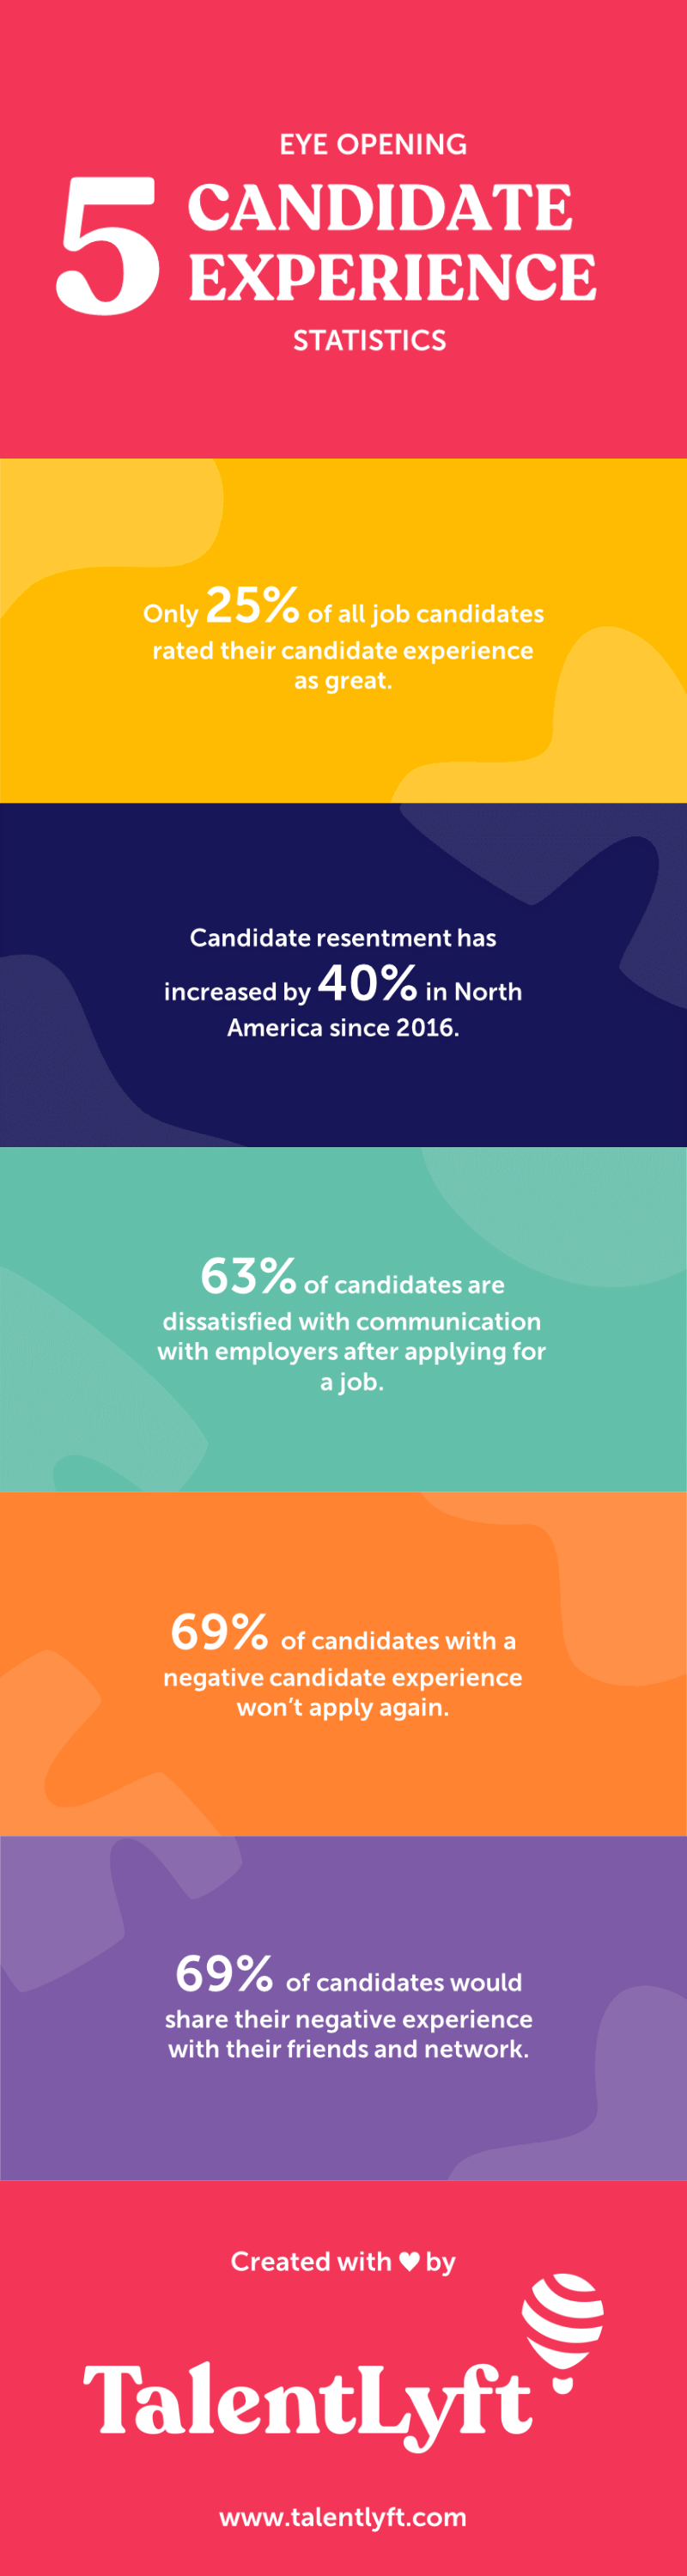 Candidate-Experience-Statistics-in-2020-INFOGRAPHIC